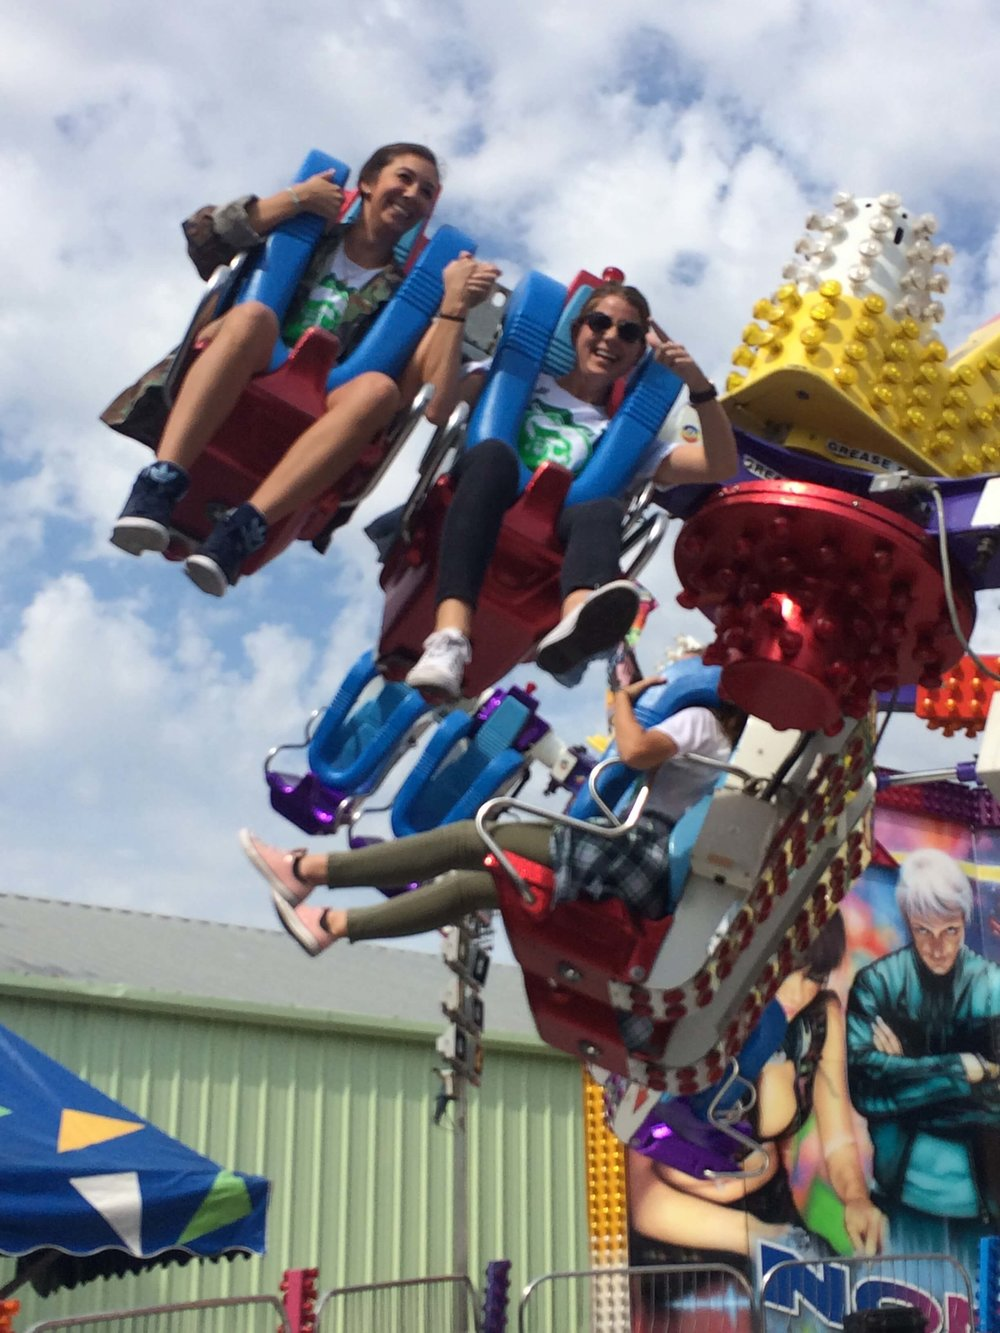 state fair of texas ride.JPG